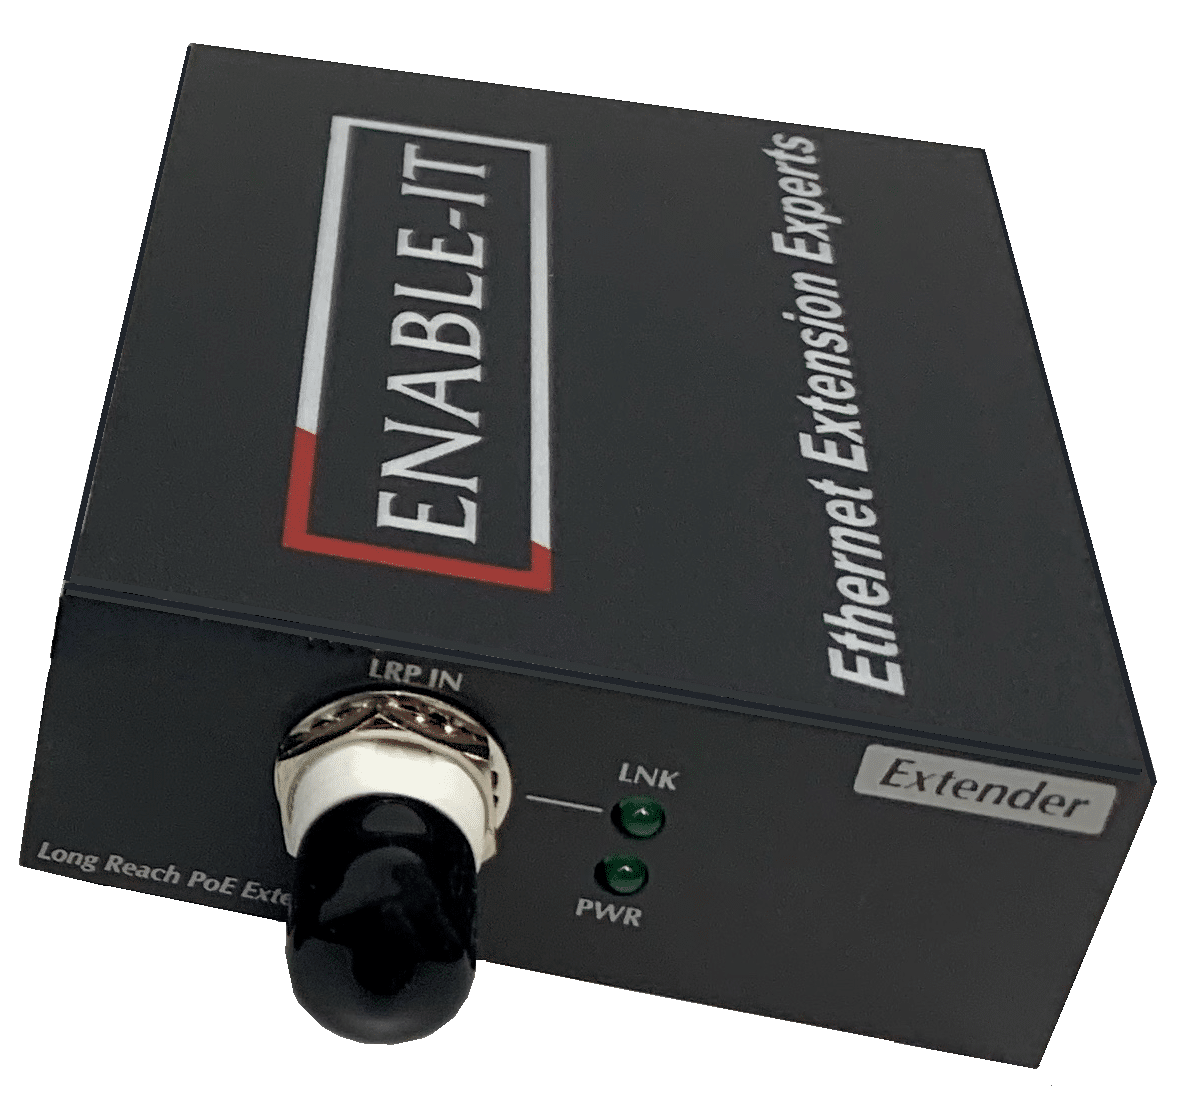 Enable-IT 821C COAX ETHERNET EXTENDER